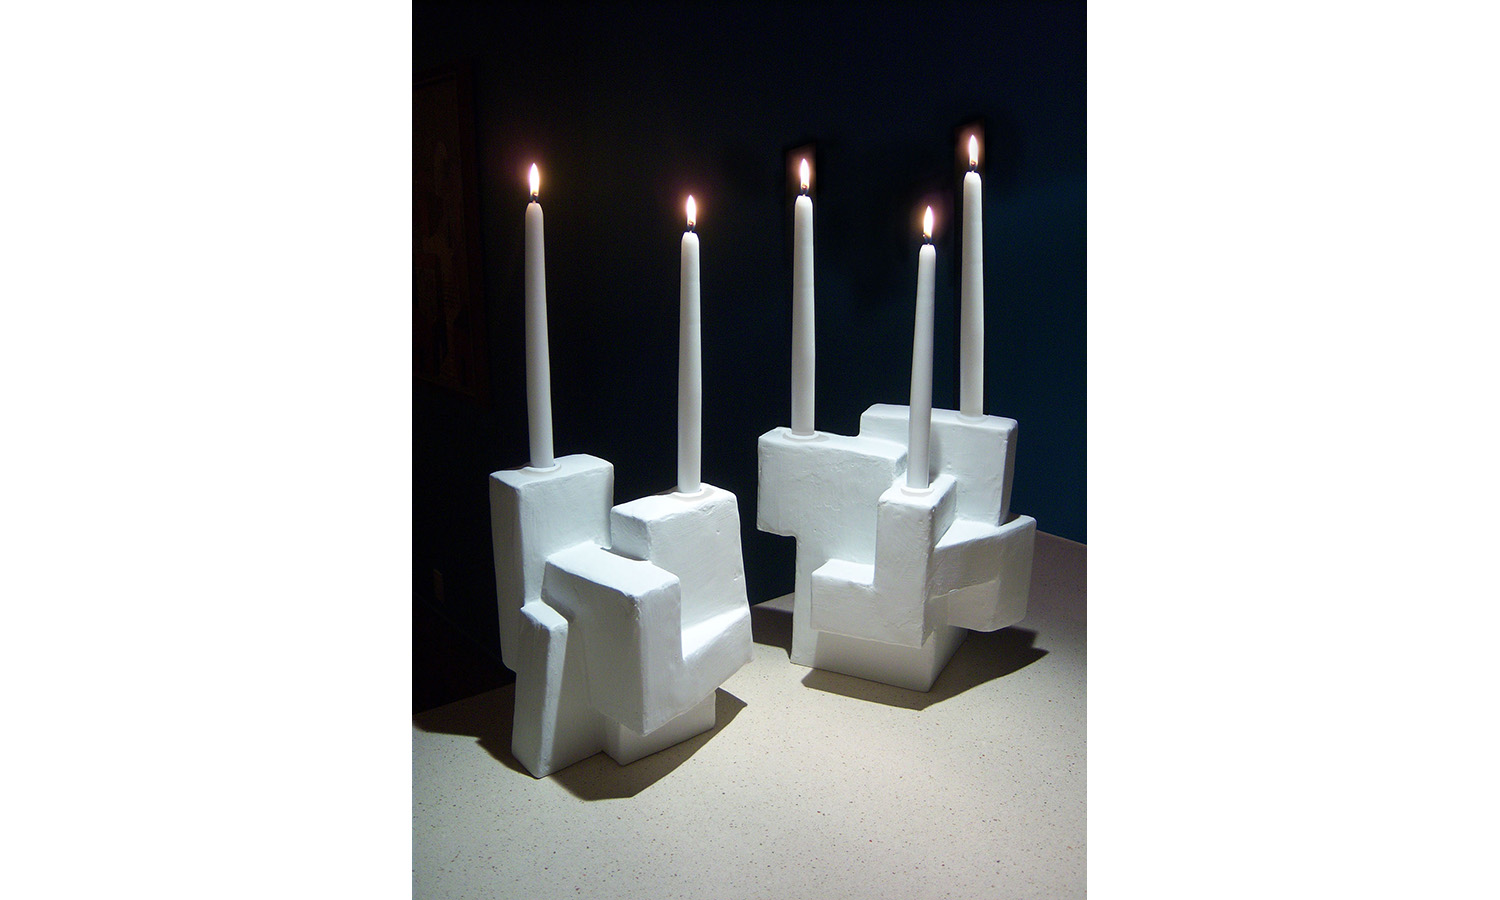 "CANDLE HOLDERS, mixed media, 7"" x 9"" x 10"" each, 2012"